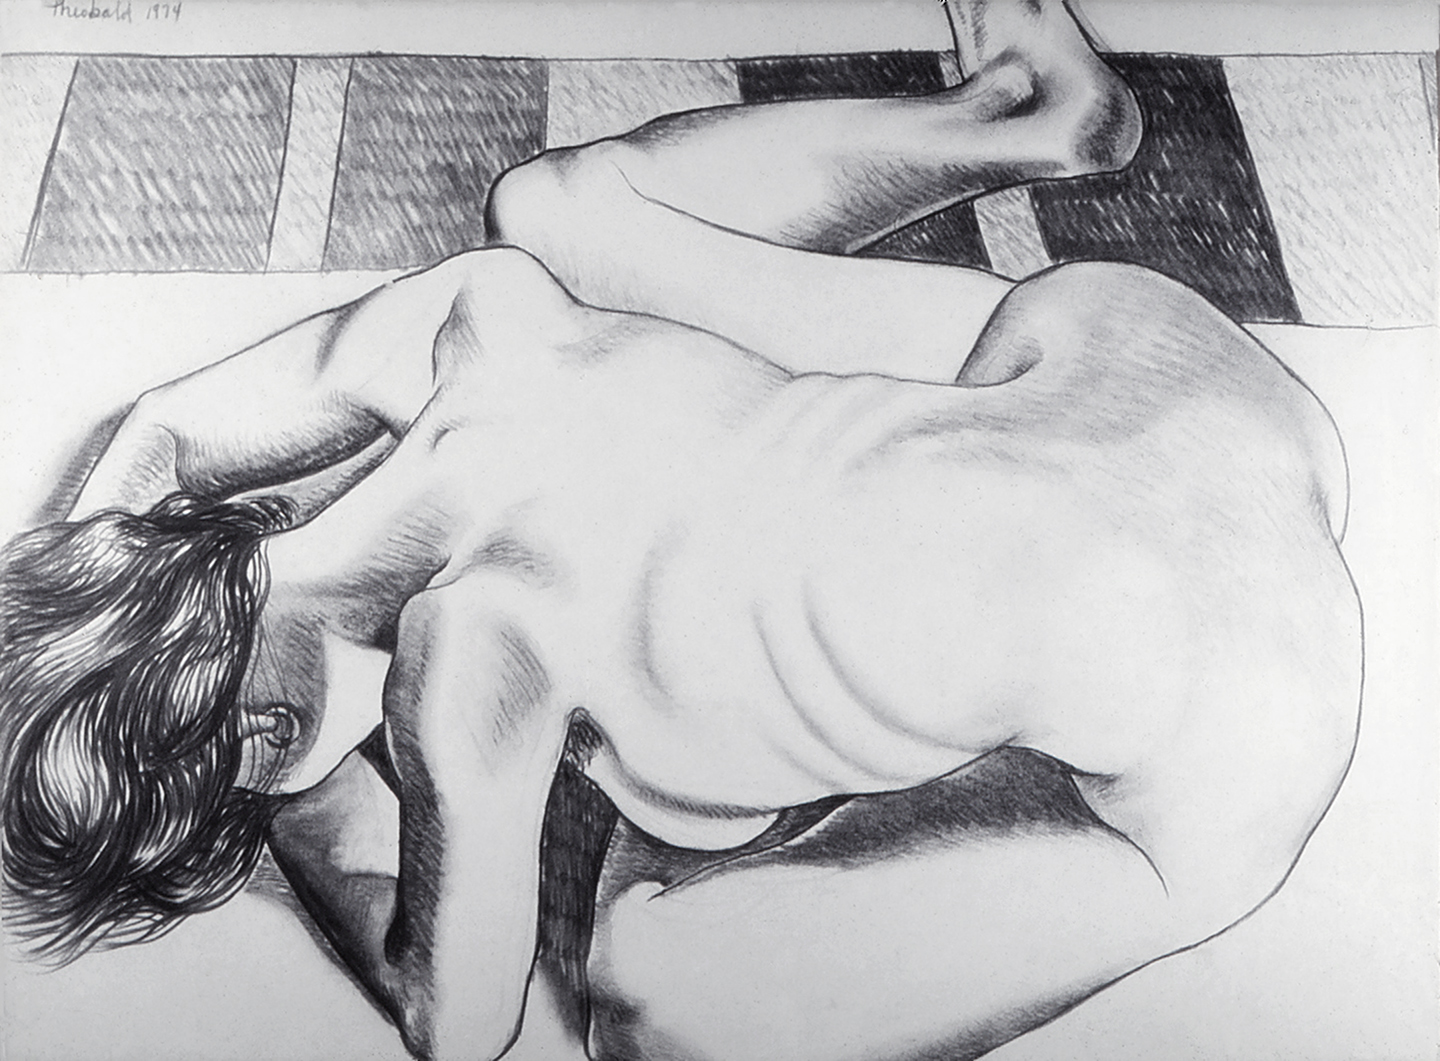 Stretching Model, 1974  Charcoal on Rives